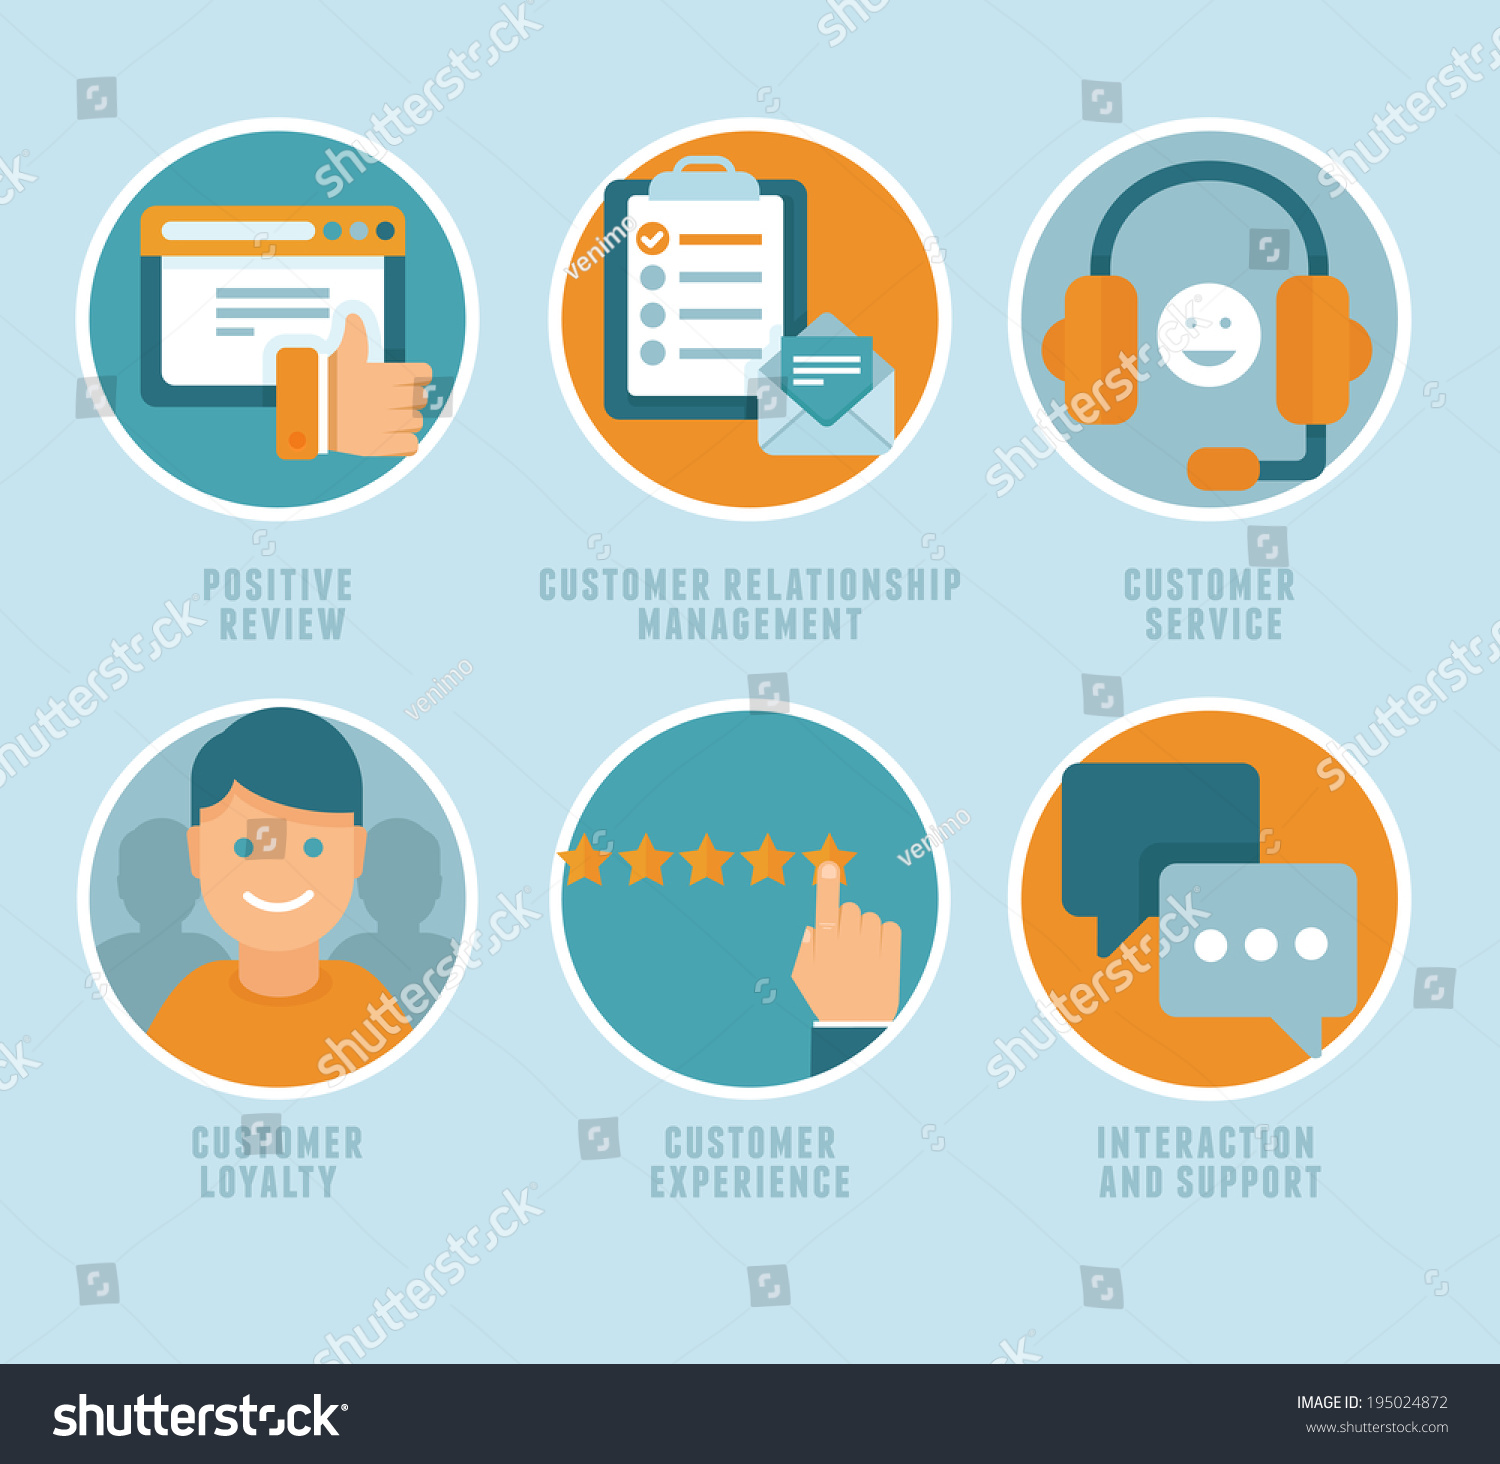 vector flat customer experience concepts icons stock vector vector flat customer experience concepts icons and infographic design elements positive review customer